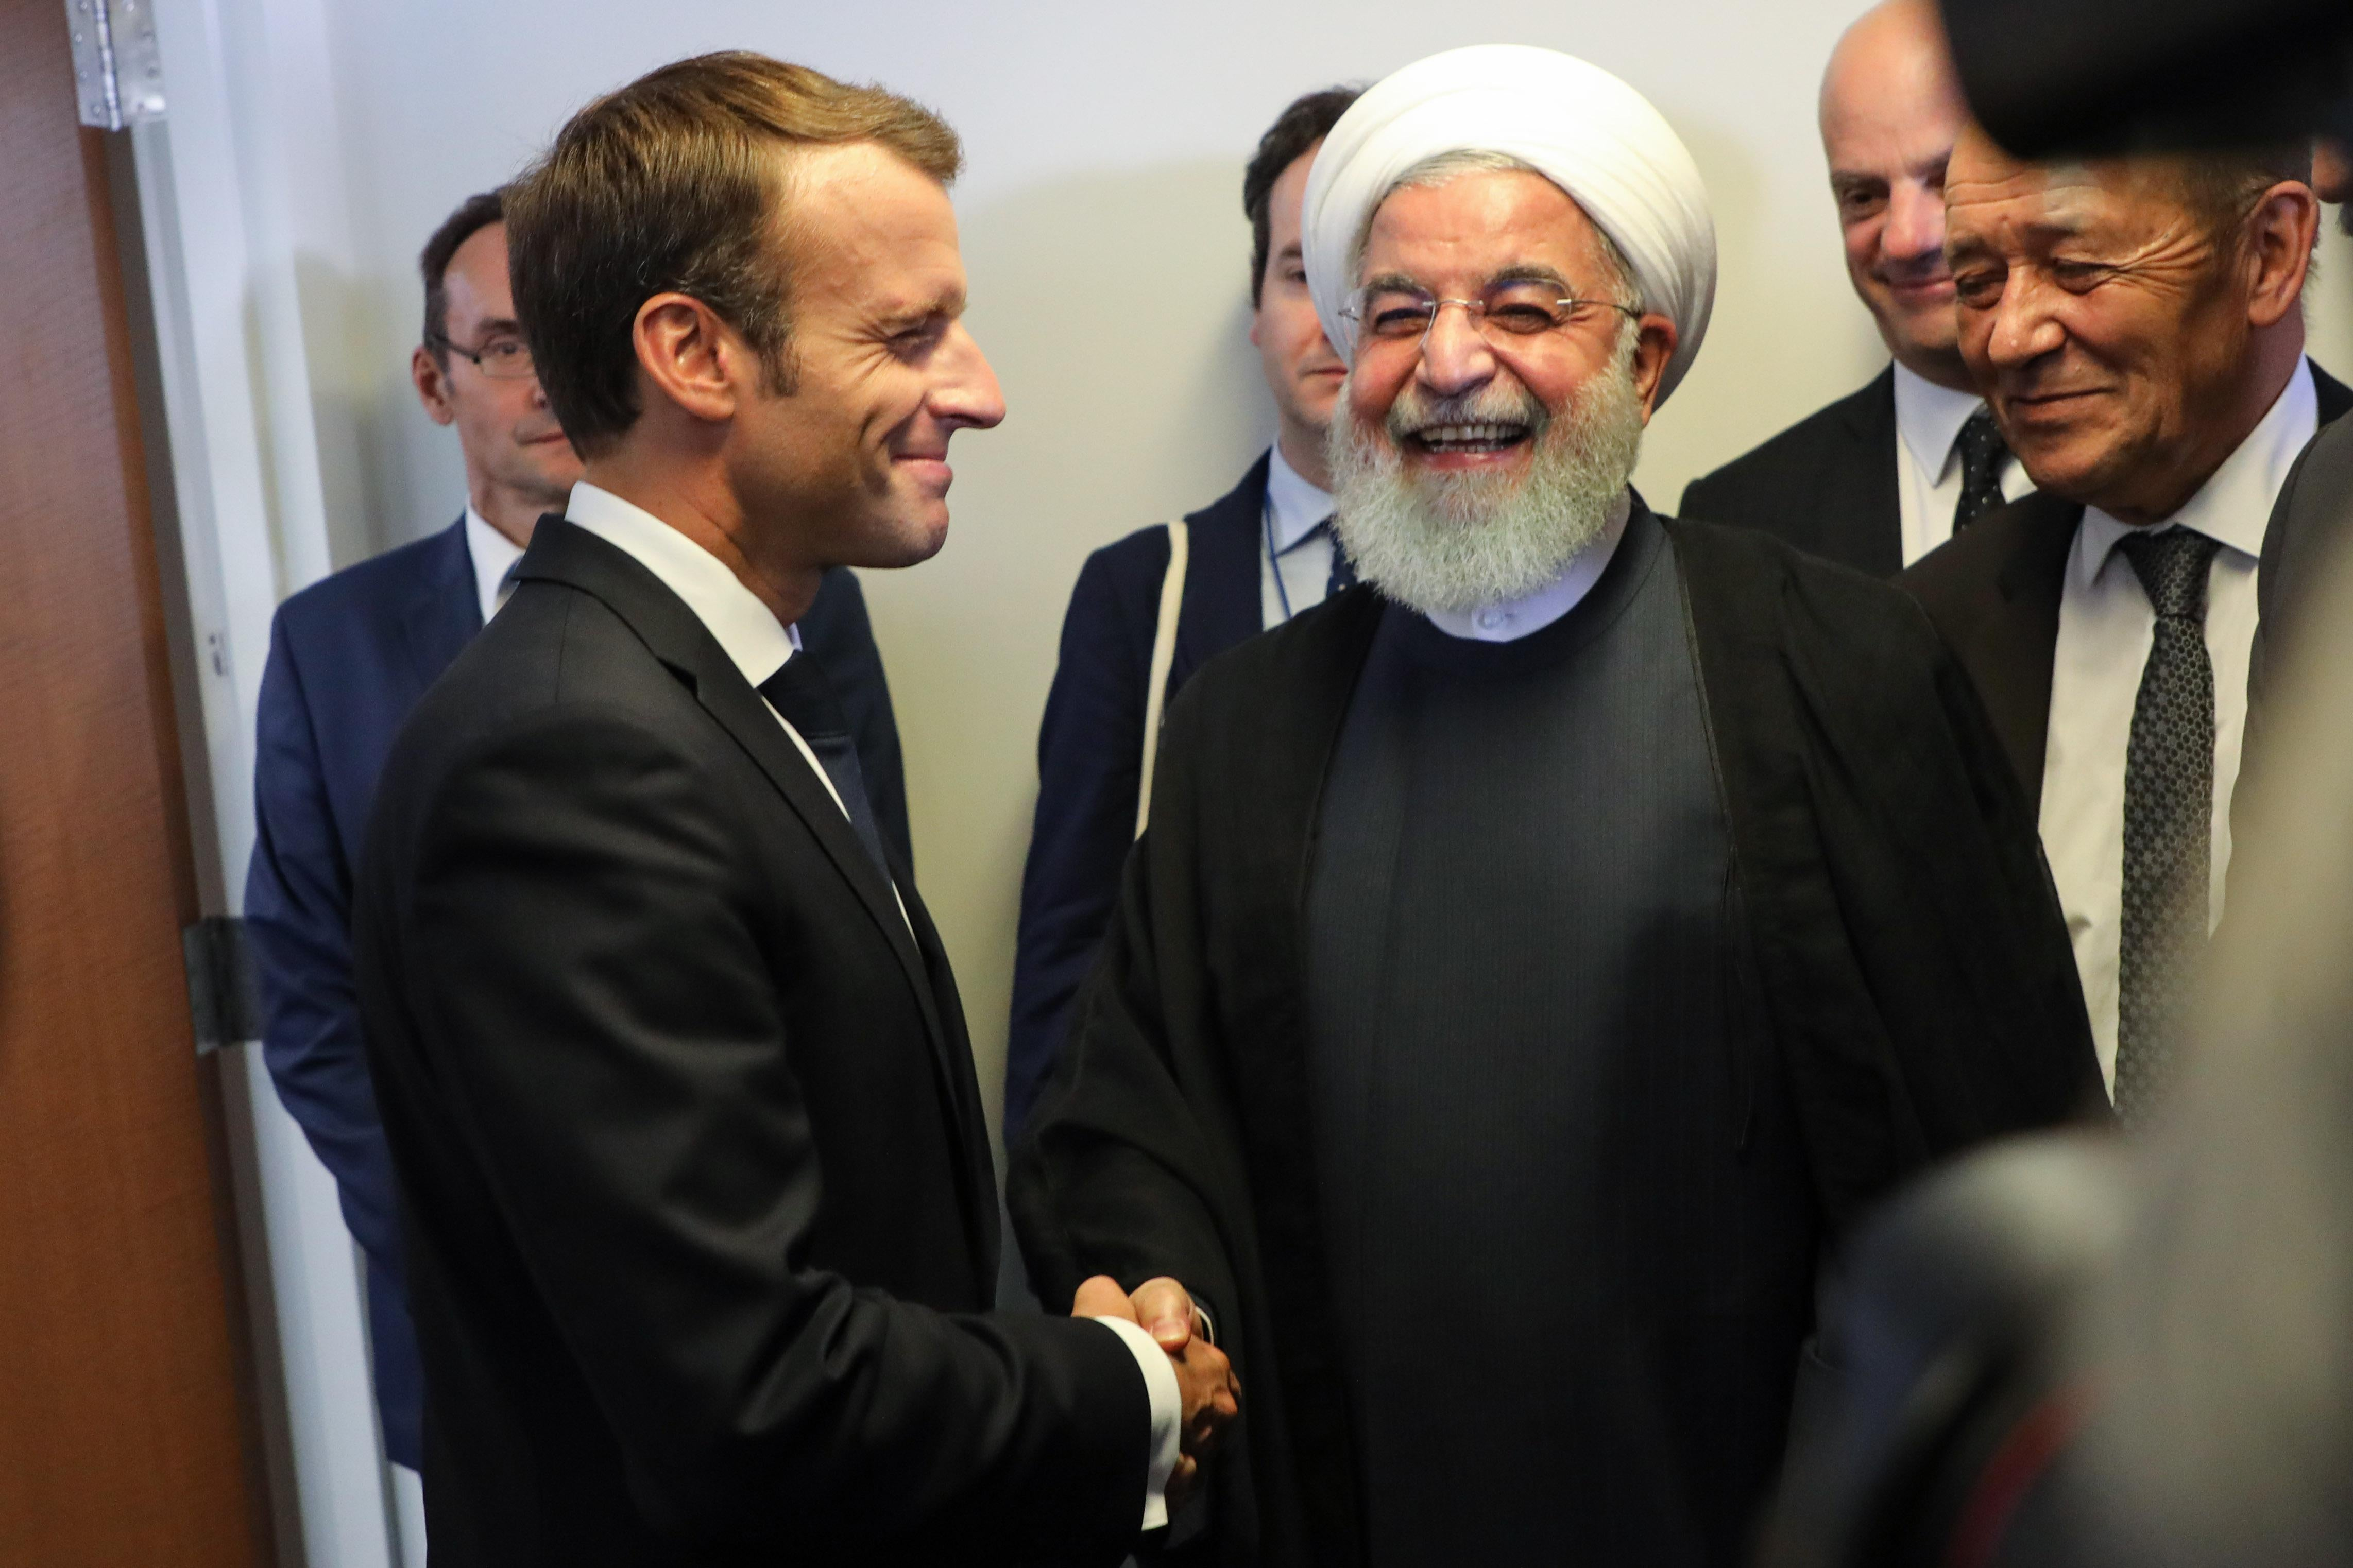 Macron shaking hands with Rouhani.